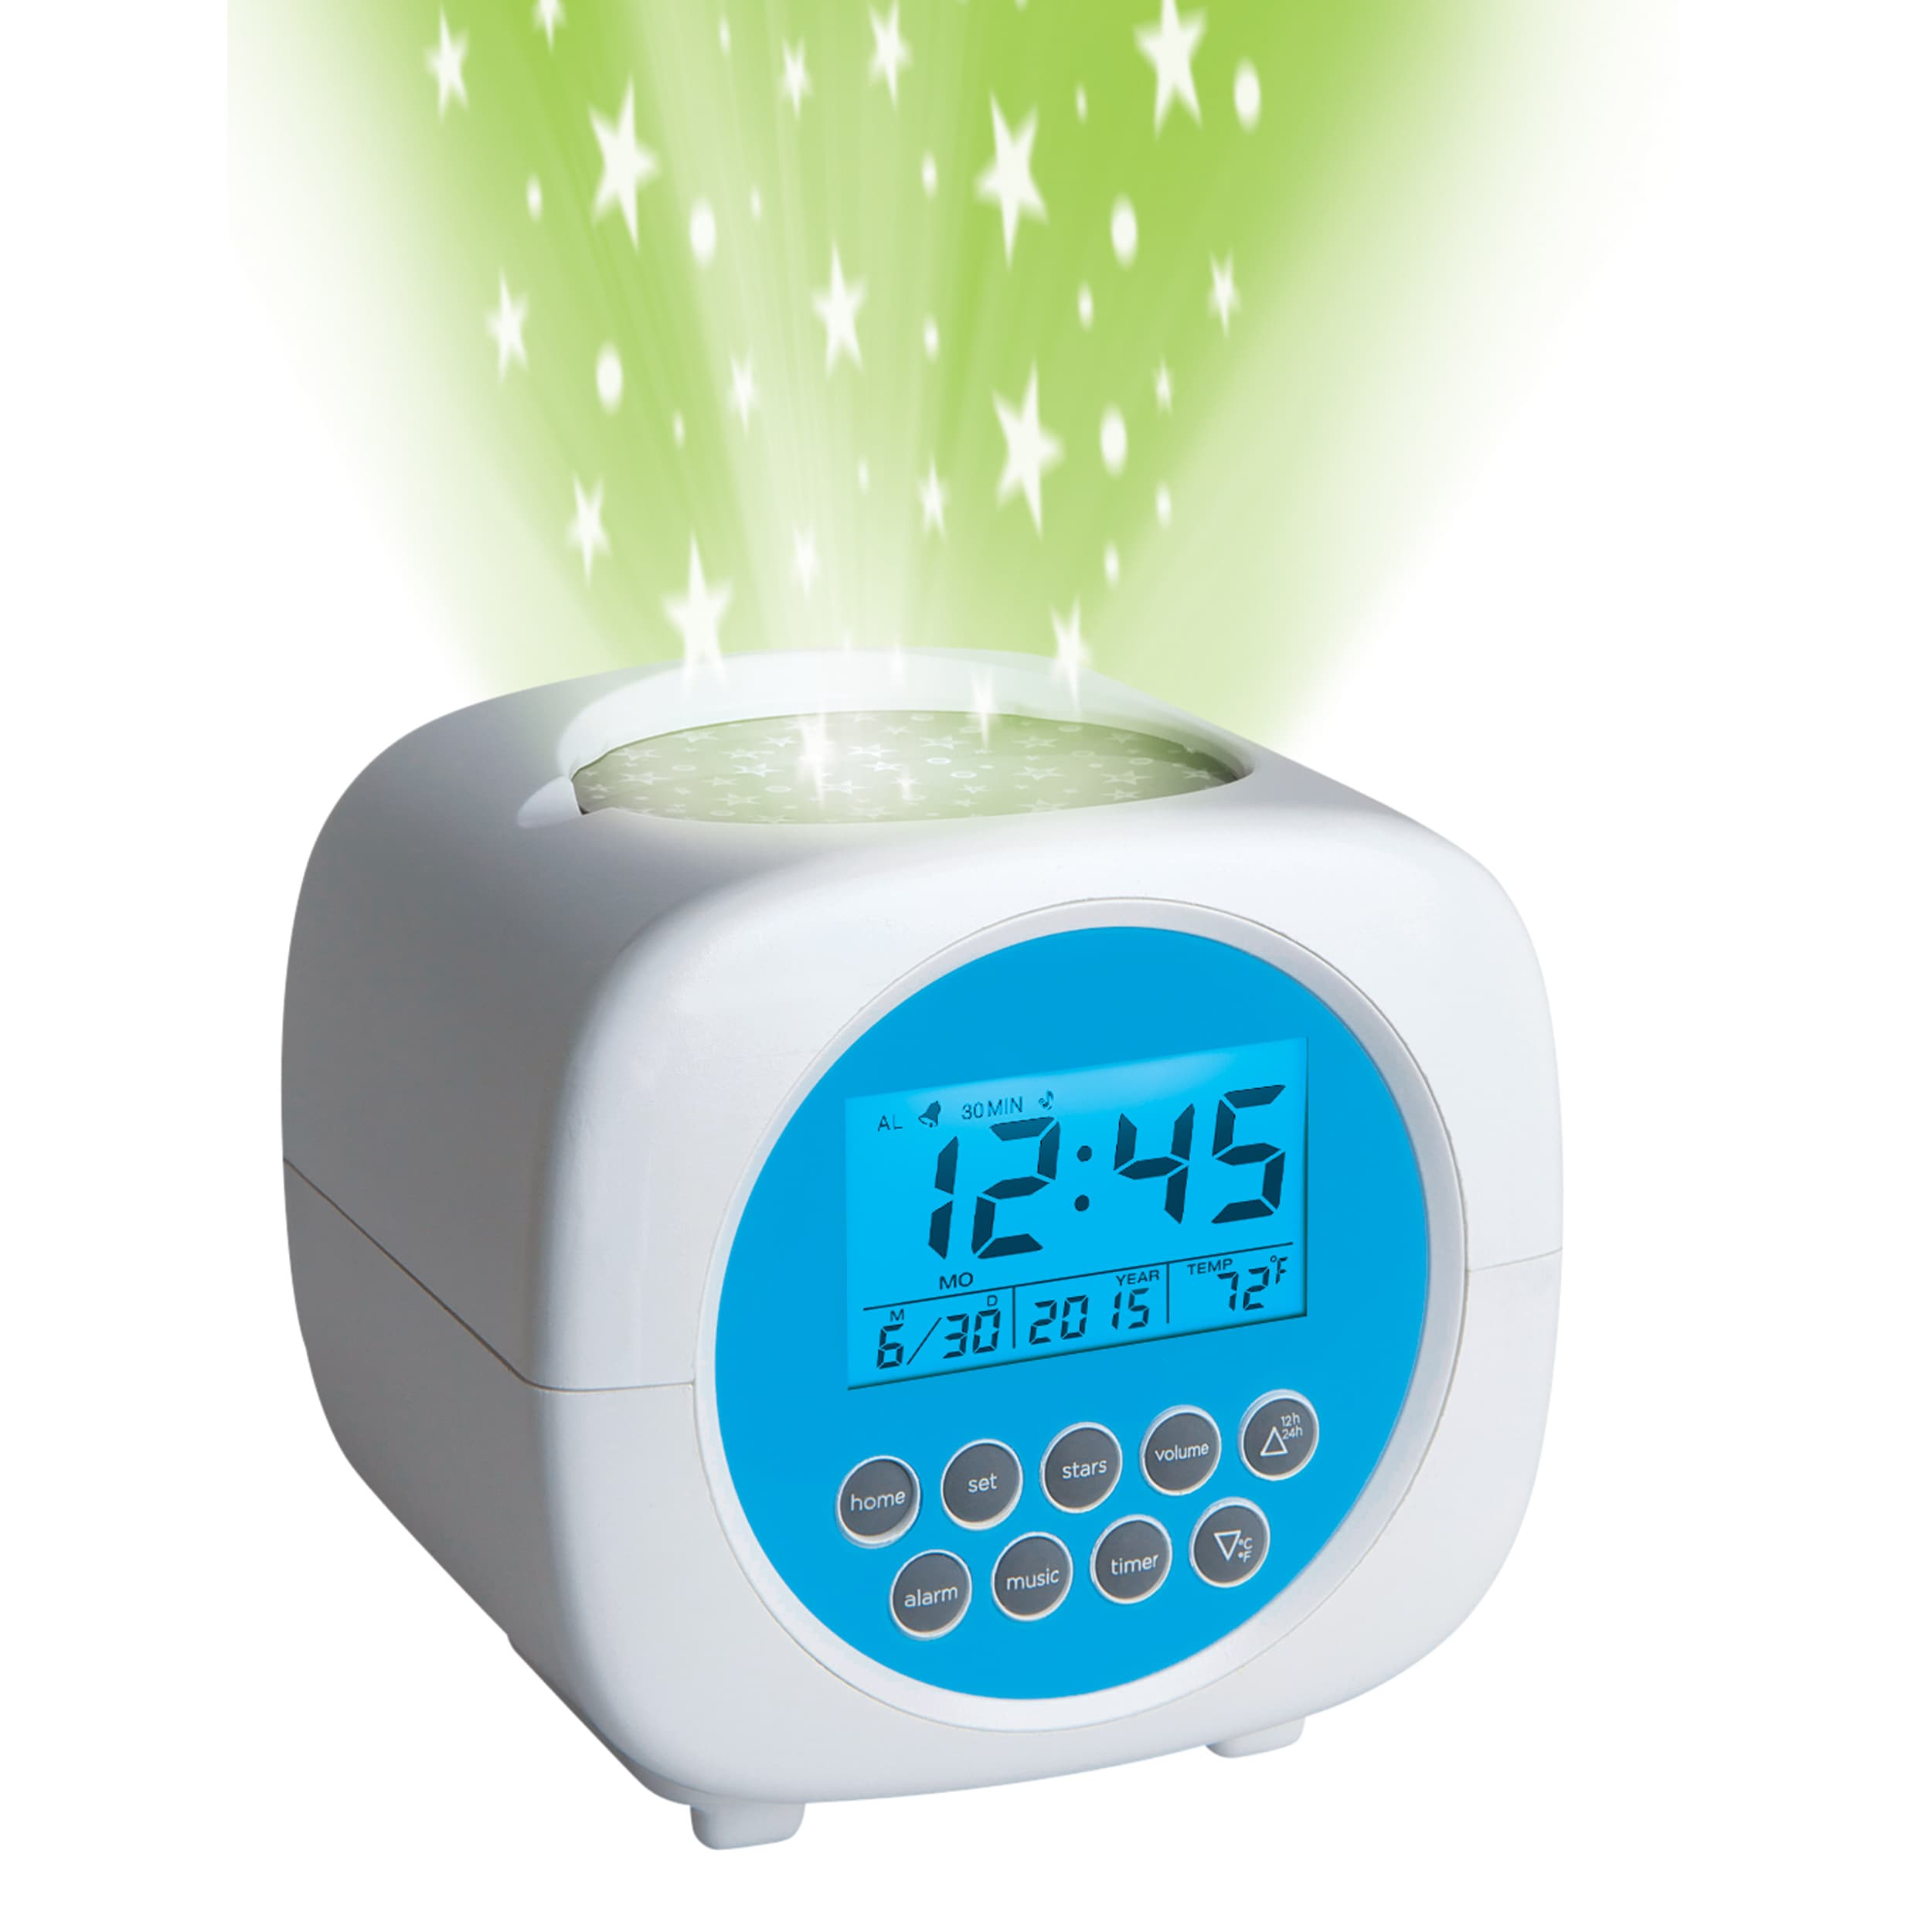 Discovery Kids Sound Machine Projection Alarm Clock - Walmart com